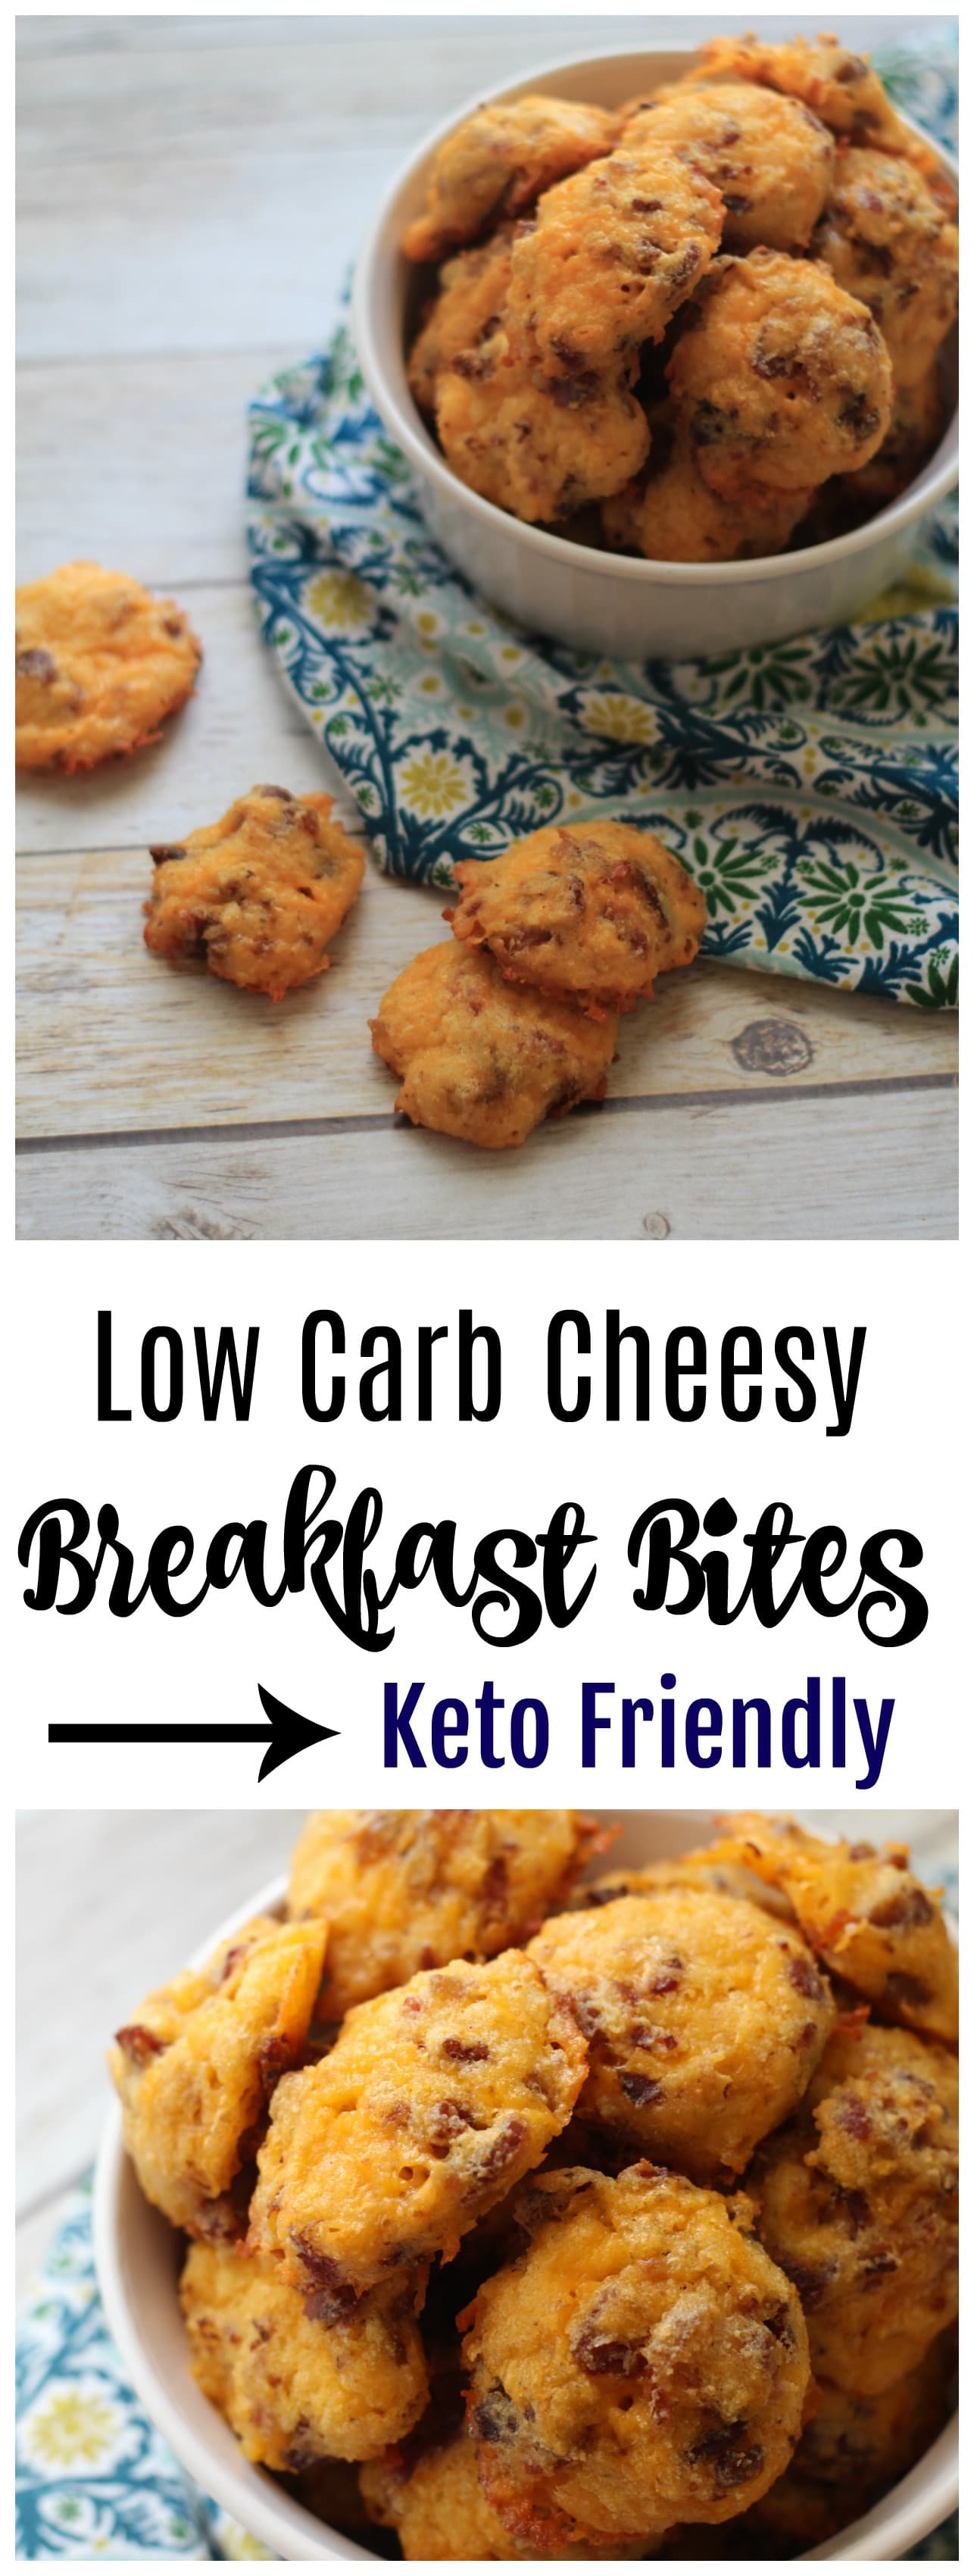 This Cheesy Bacon Coconut Flour Biscuits Recipe is a perfect option for make ahead breakfasts that everyone will enjoy. Full of great keto friendly flavor!